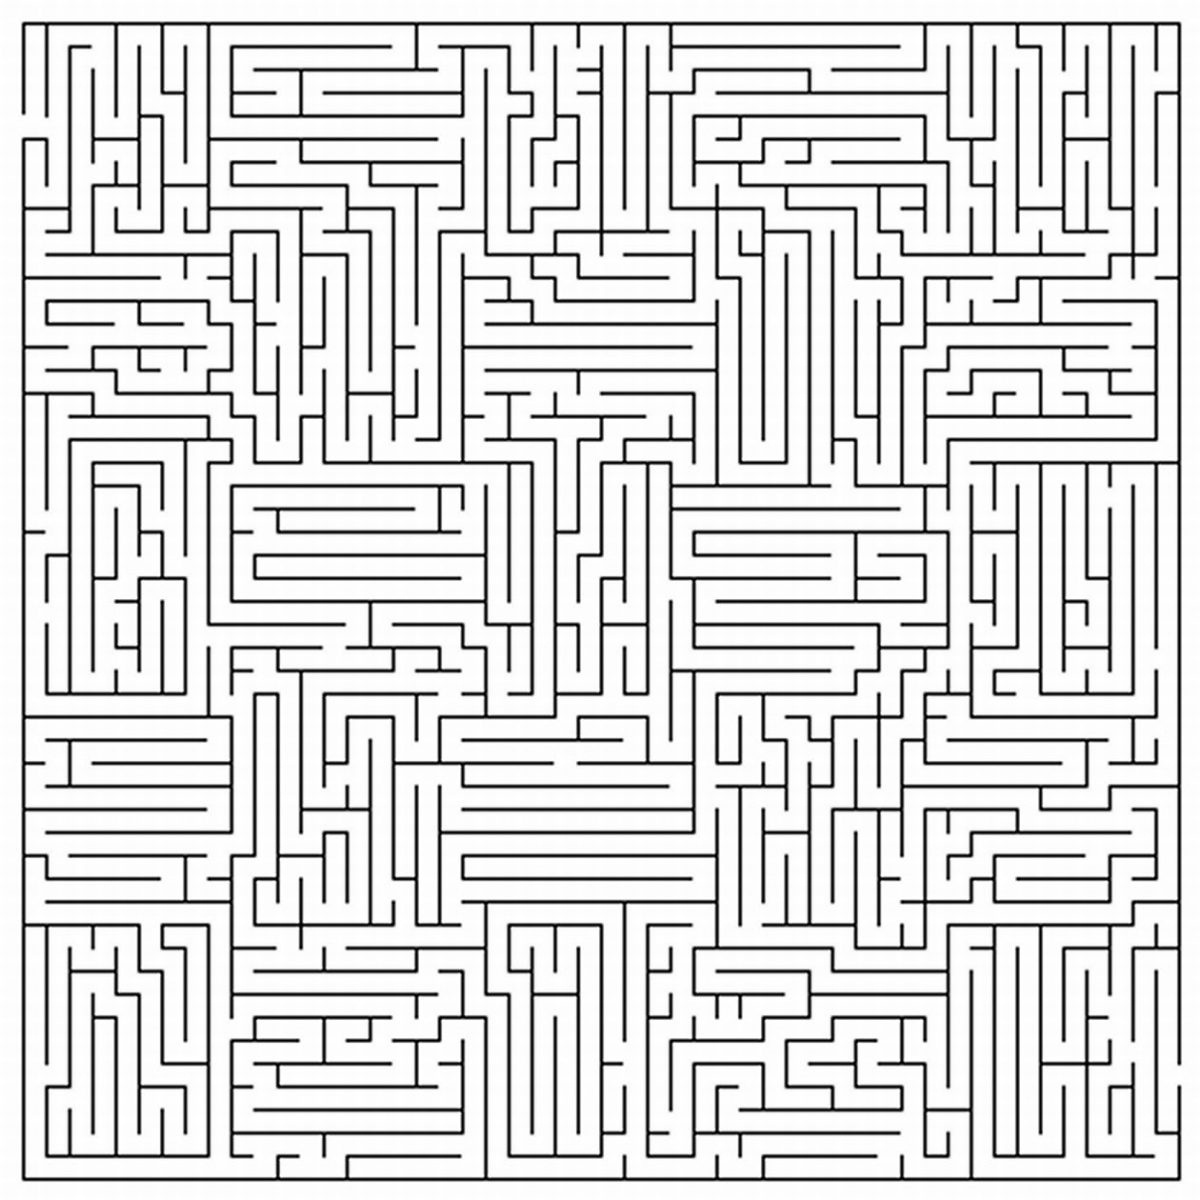 Free Printable Mazes For Kids, Toddlers & Adults - Free Printable Mazes For Kids